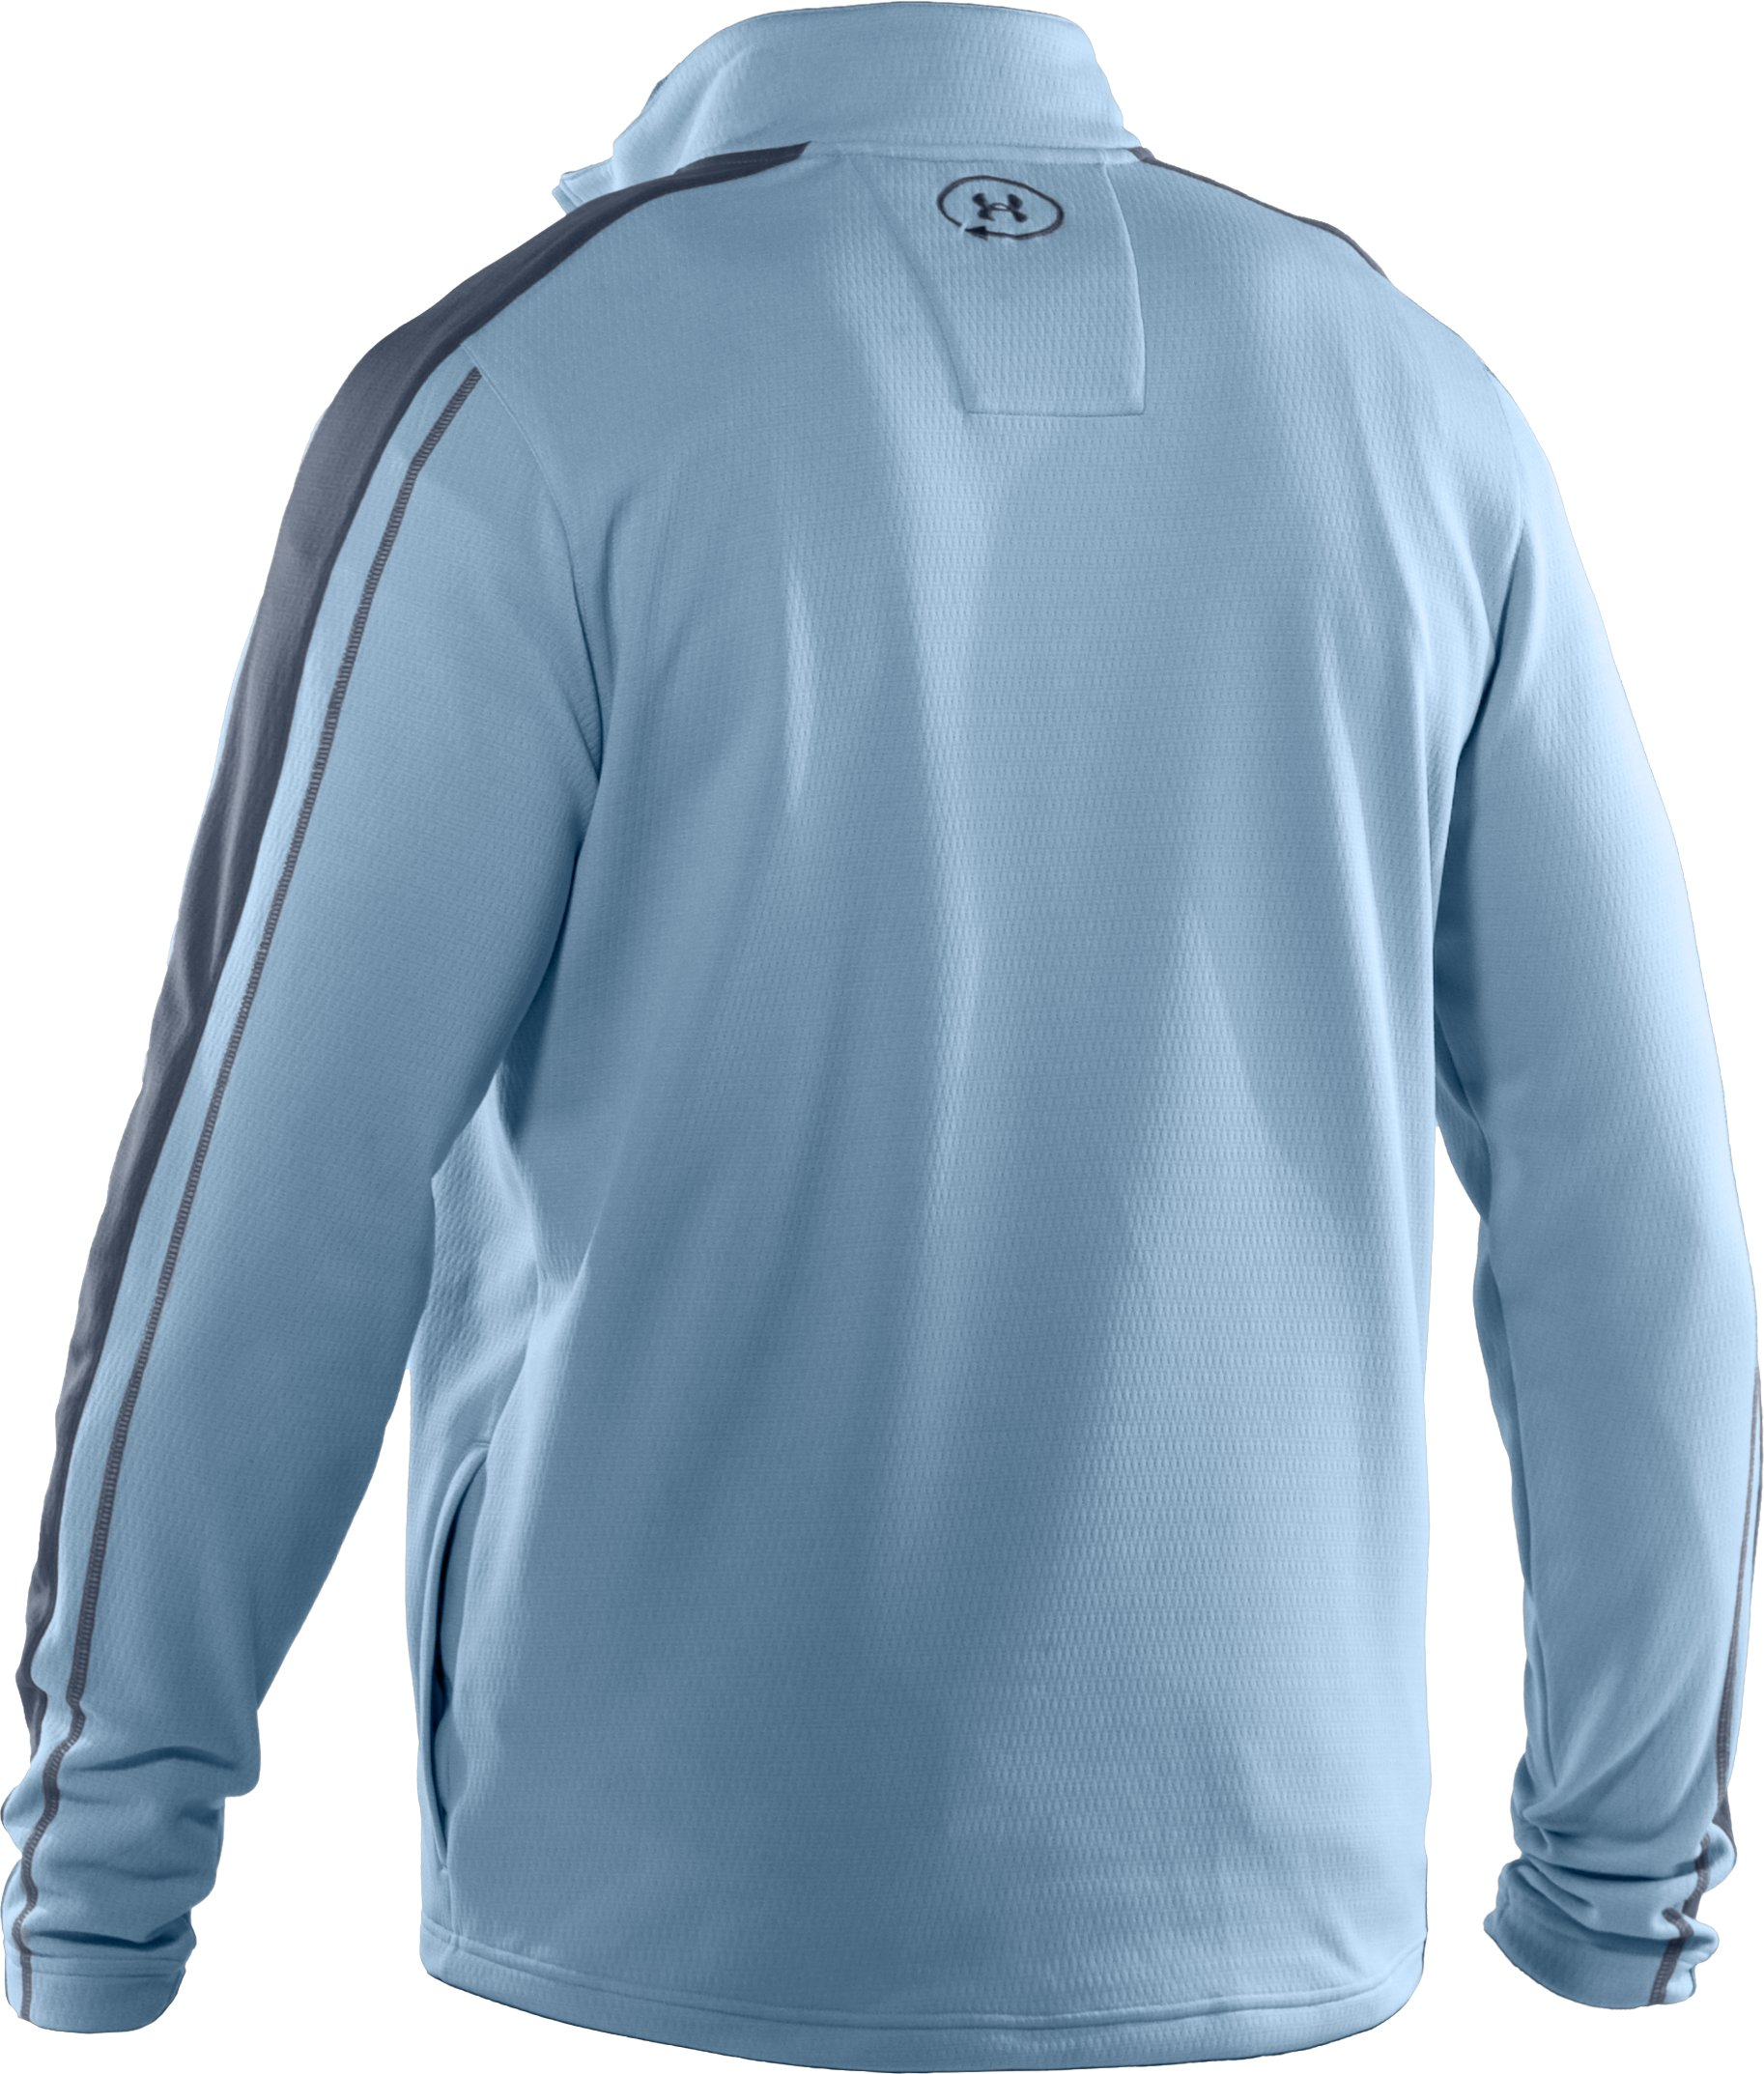 Men's UA Catalyst Focus 3.0 ¼ Zip Jacket, Solder